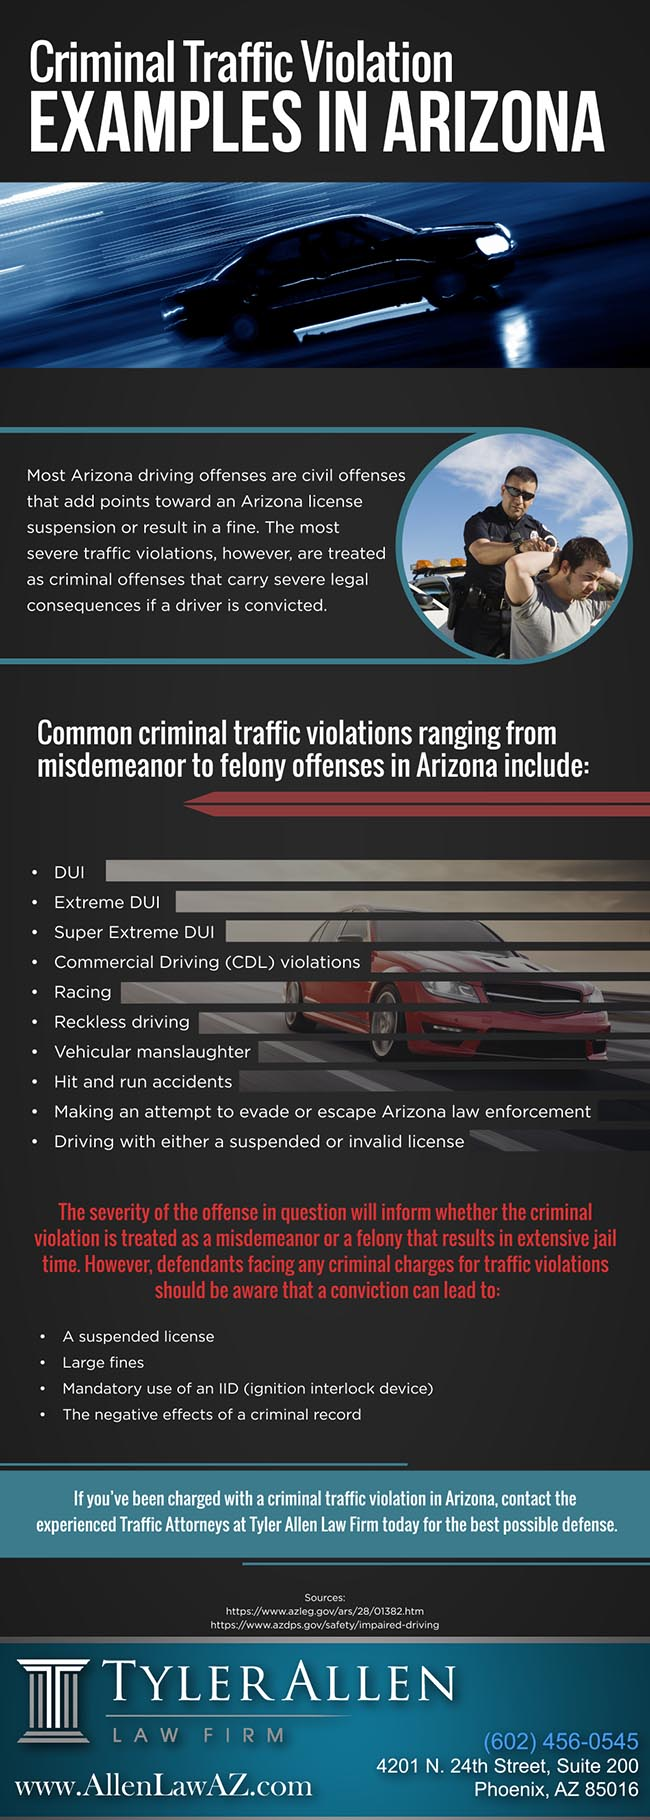 Criminal Traffic Violation Examples in Arizona